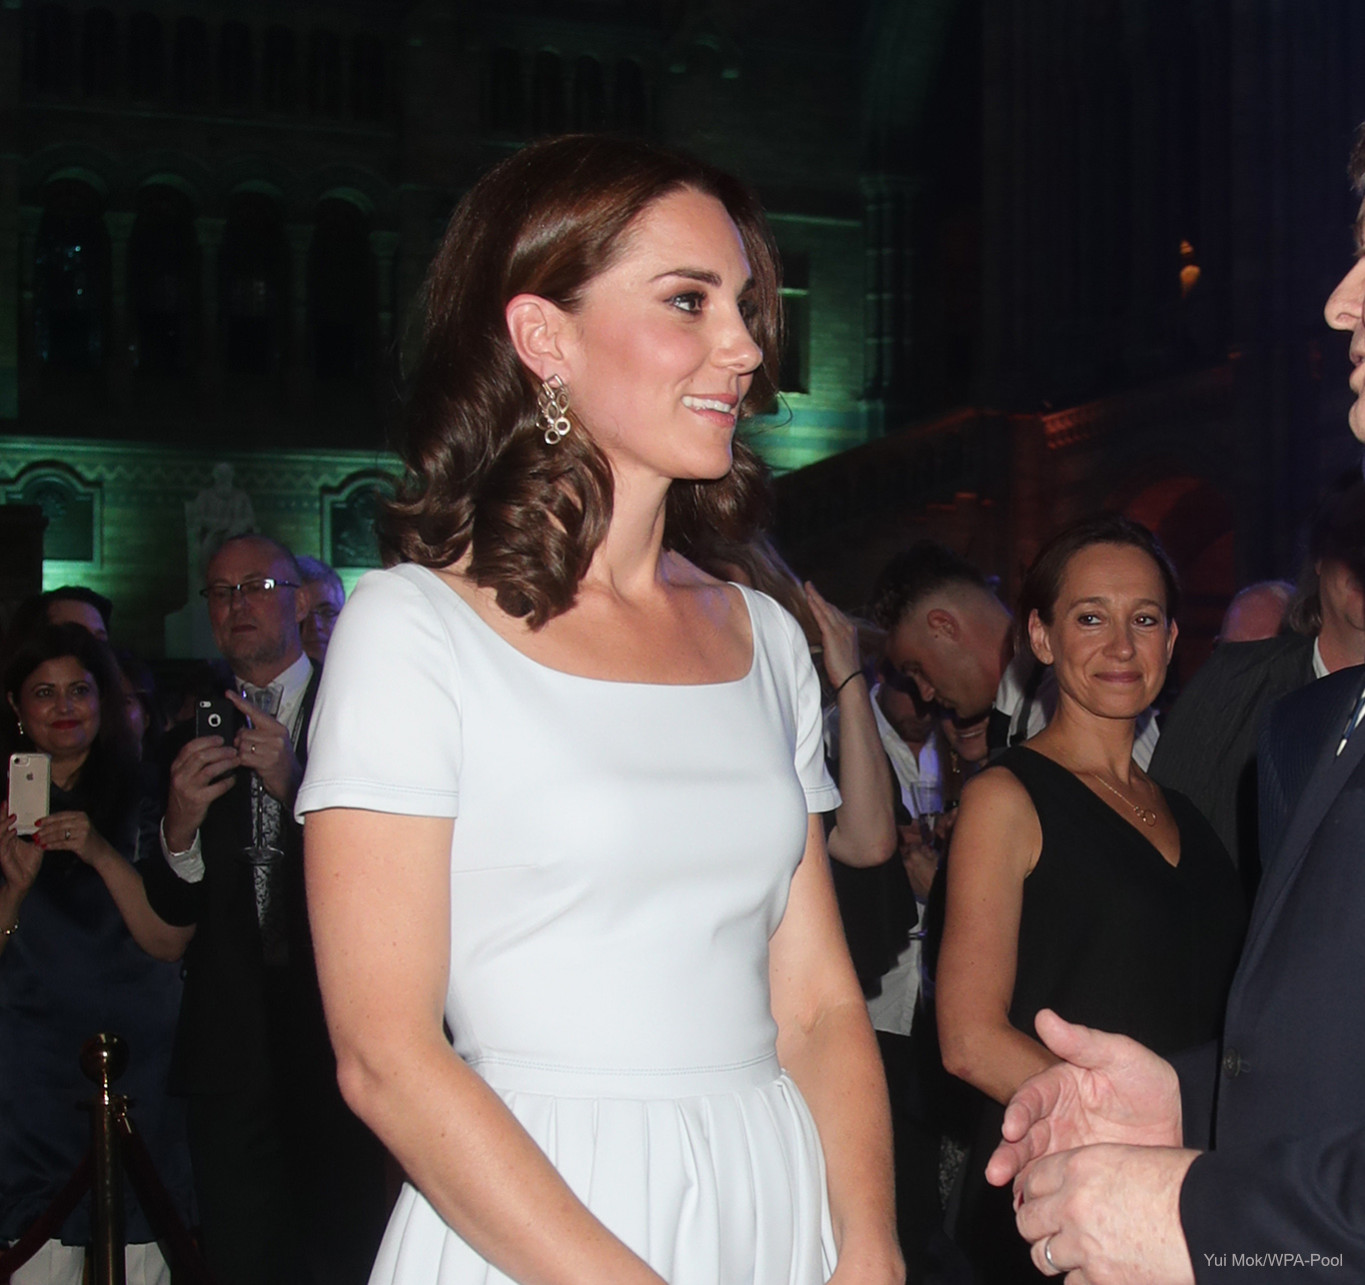 The Duchess of Cambridge attends the reopening of Hintze Hall at the Natural History Museum, London, UK, on the 13th July 2017.